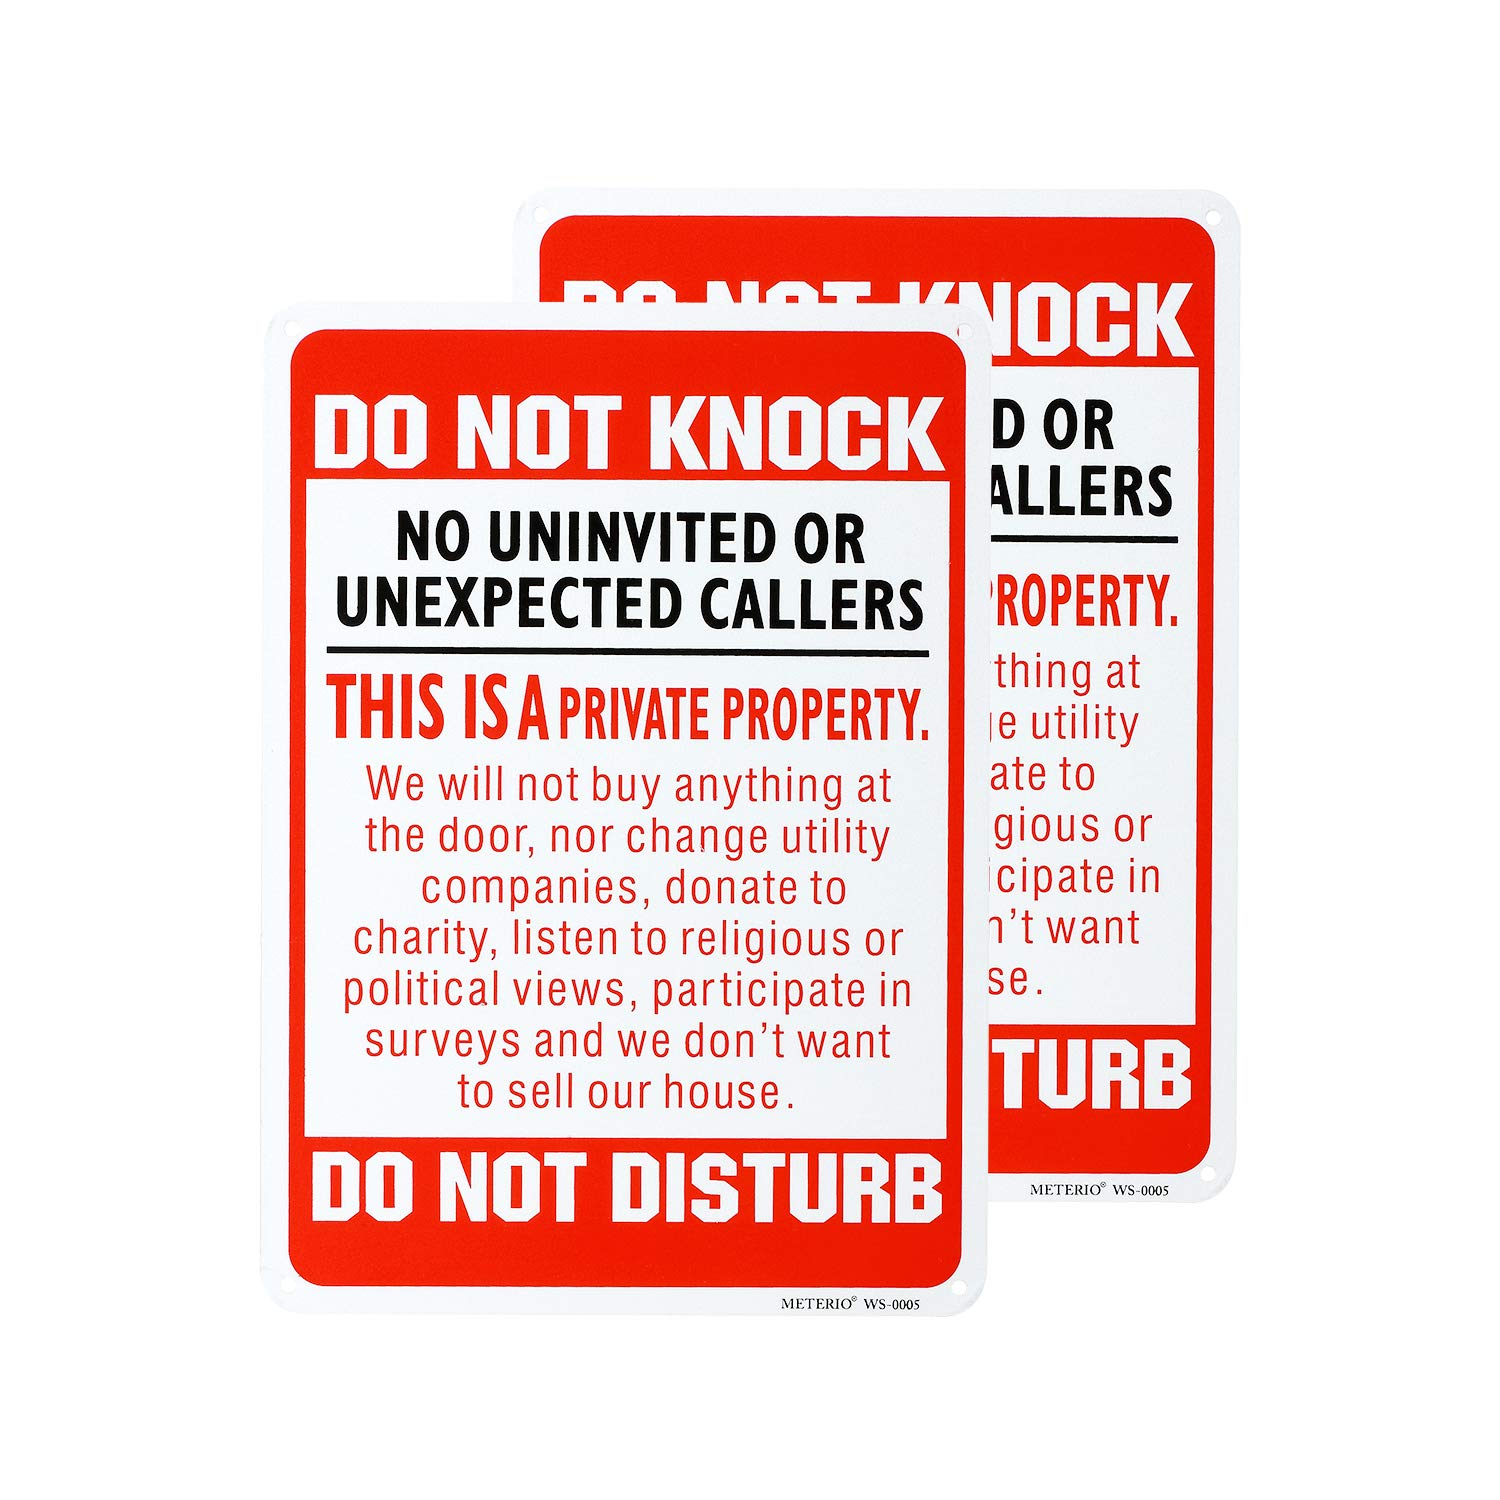 METERIO Do Not Knock Do Not Disturb Sign, Aluminum Reflective Warning Sign, UV Protected and Waterproof, Indoor Or Outdoor Use for Home Business Security, 7